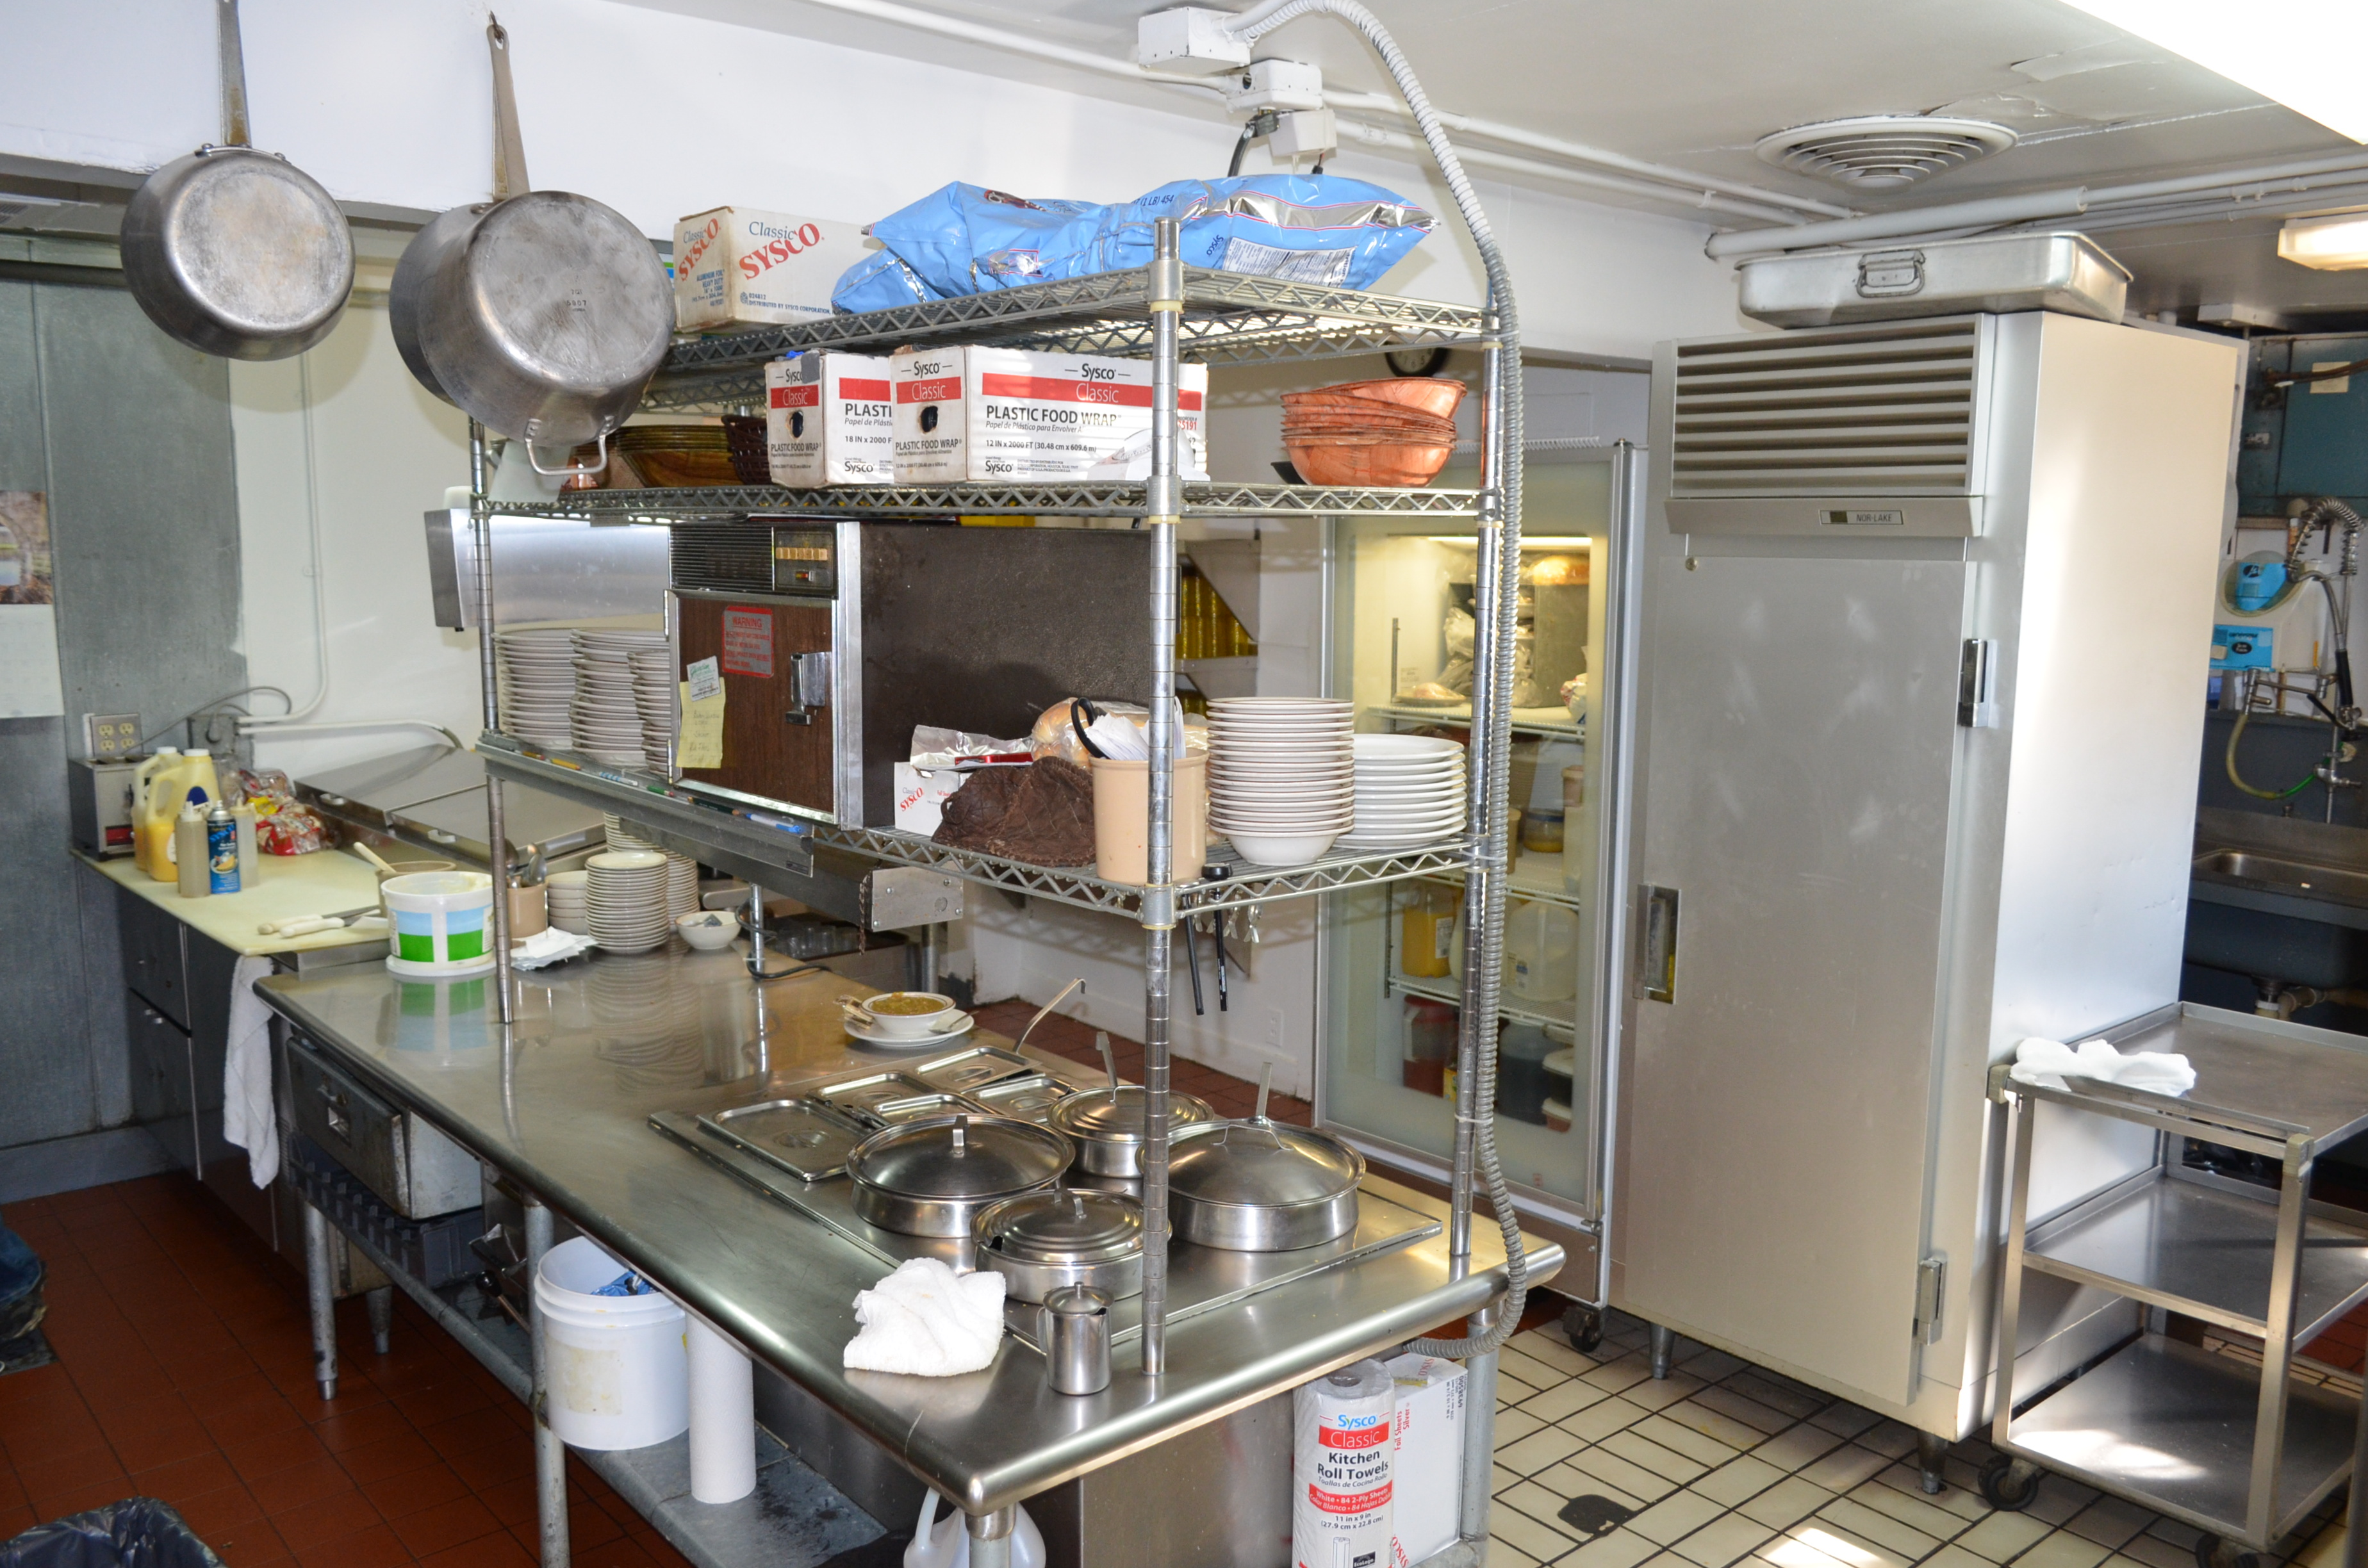 PRICE REDUCED! Spotlite Cafe - Close Converse